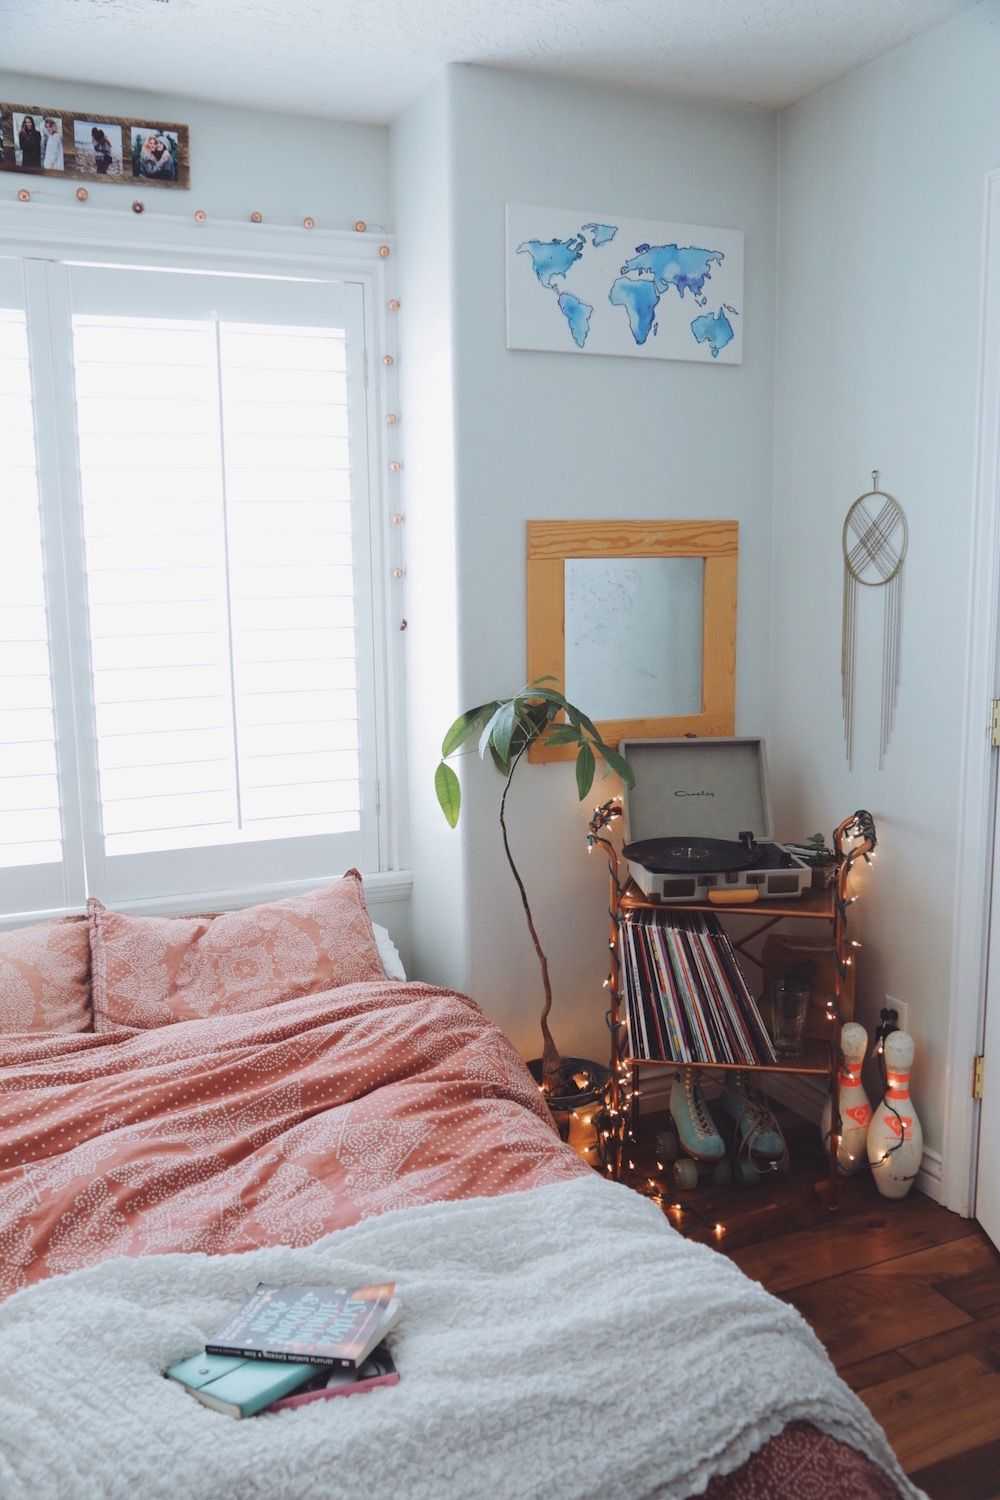 11 Ways To Make The Most Of Your Dorm Room: UO Interviews: Dream Rooms